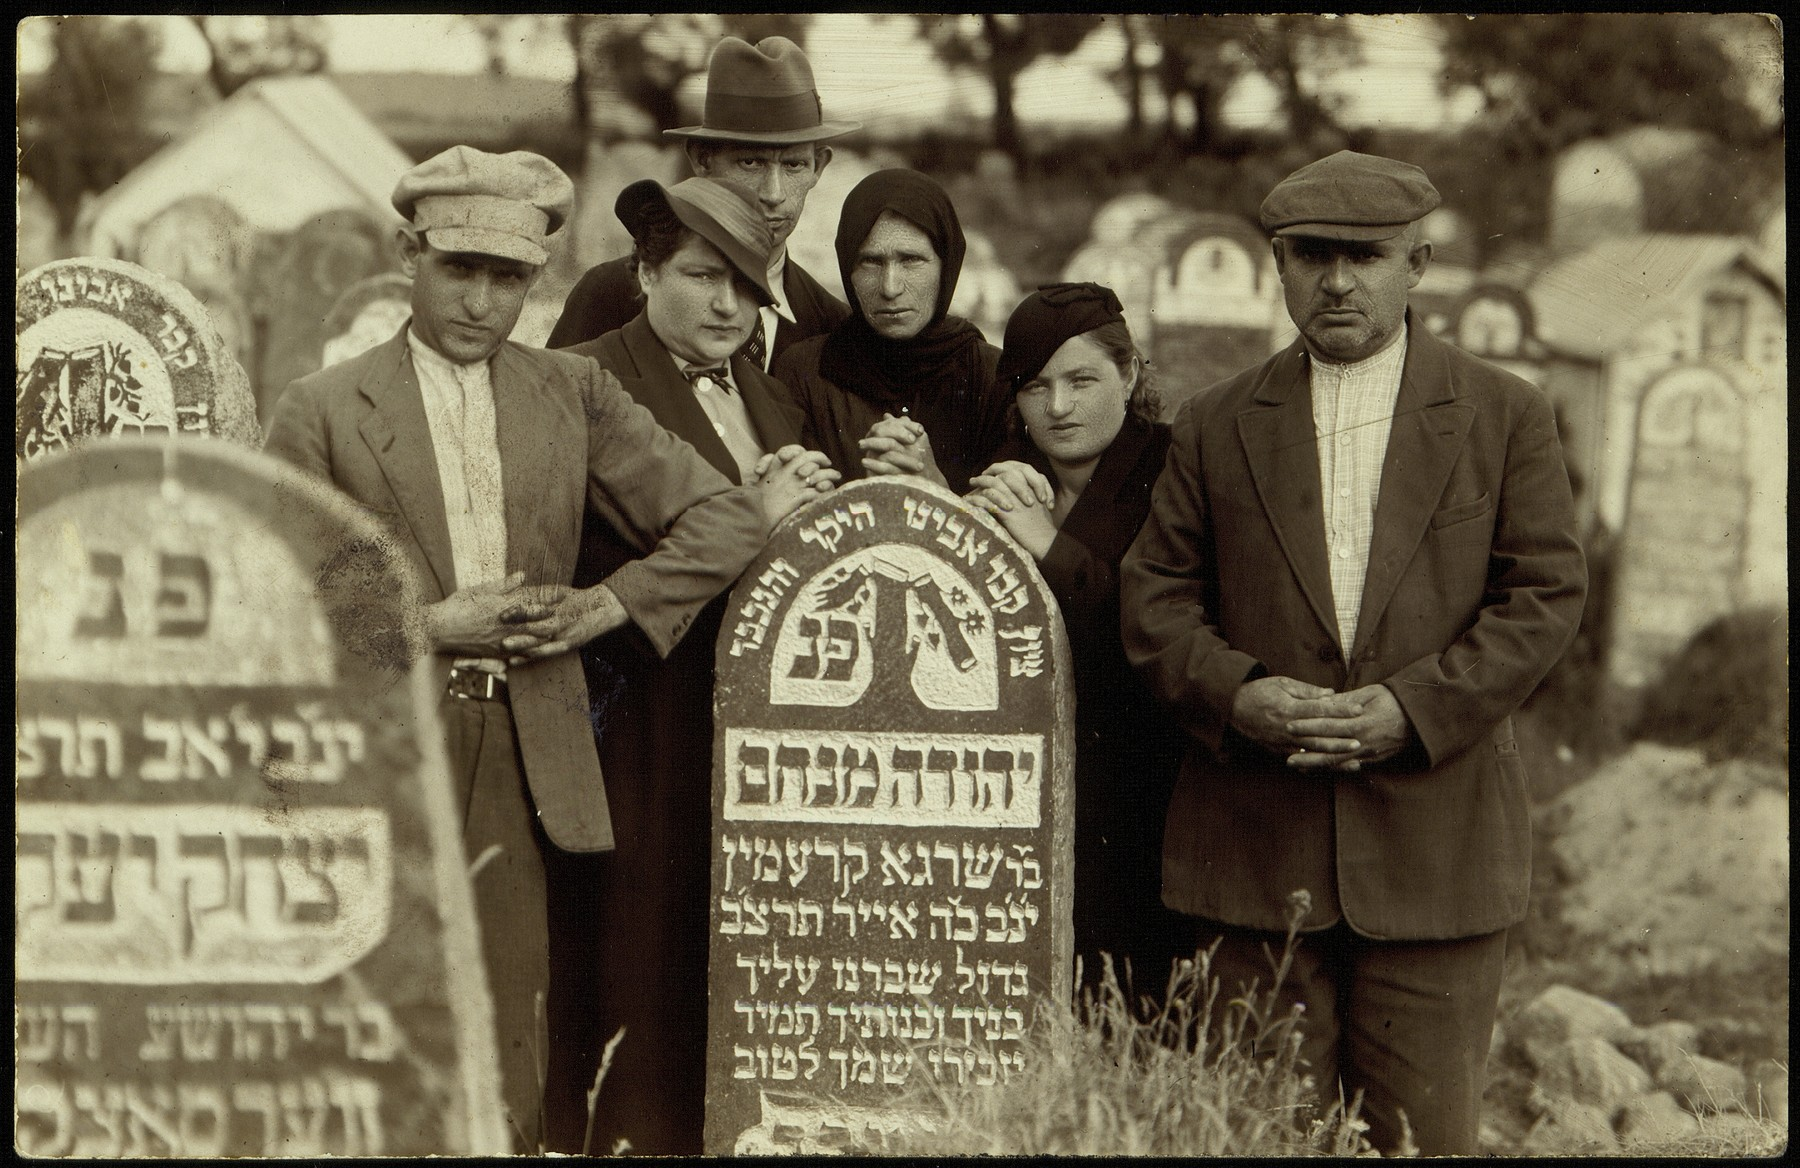 Members of the Kremin family gather by the tombstone of Yehuda Menachem Kremin.  From right to left are Hirsch Faivel Kremin, Rivka Kremin Tatarski, Nehama Kremin Schmidt, Notl Krashunski, Hayya Kremin Krashunski and Hayyim Yitzhak Kremin.  All perished during the Holocaust in Eisiskes, Lida or Grodno.